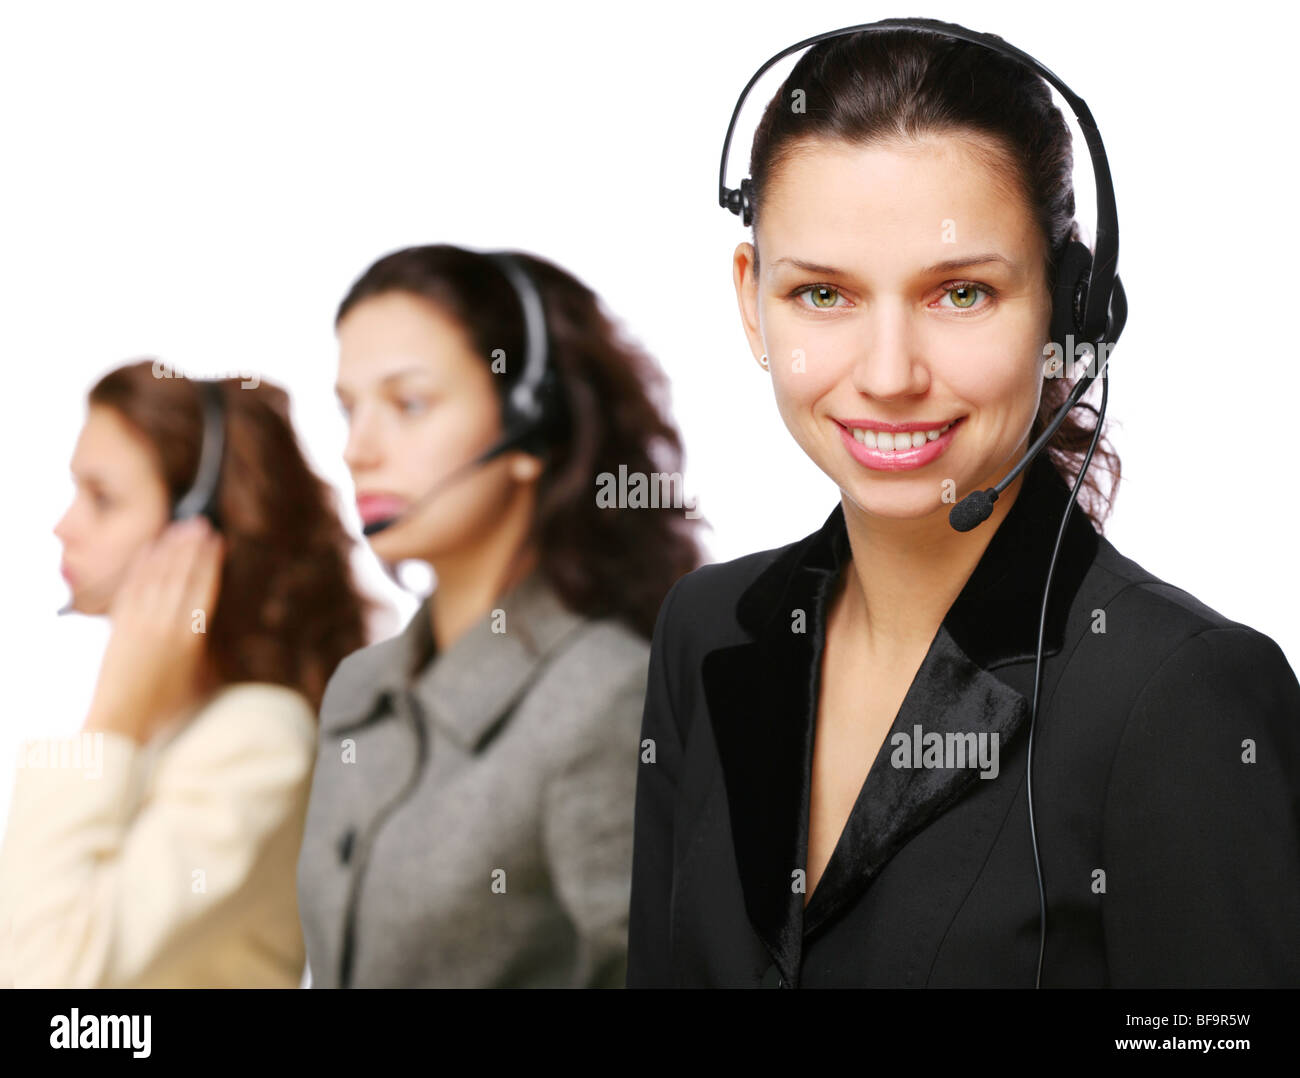 Customer support team during work. - Stock Image